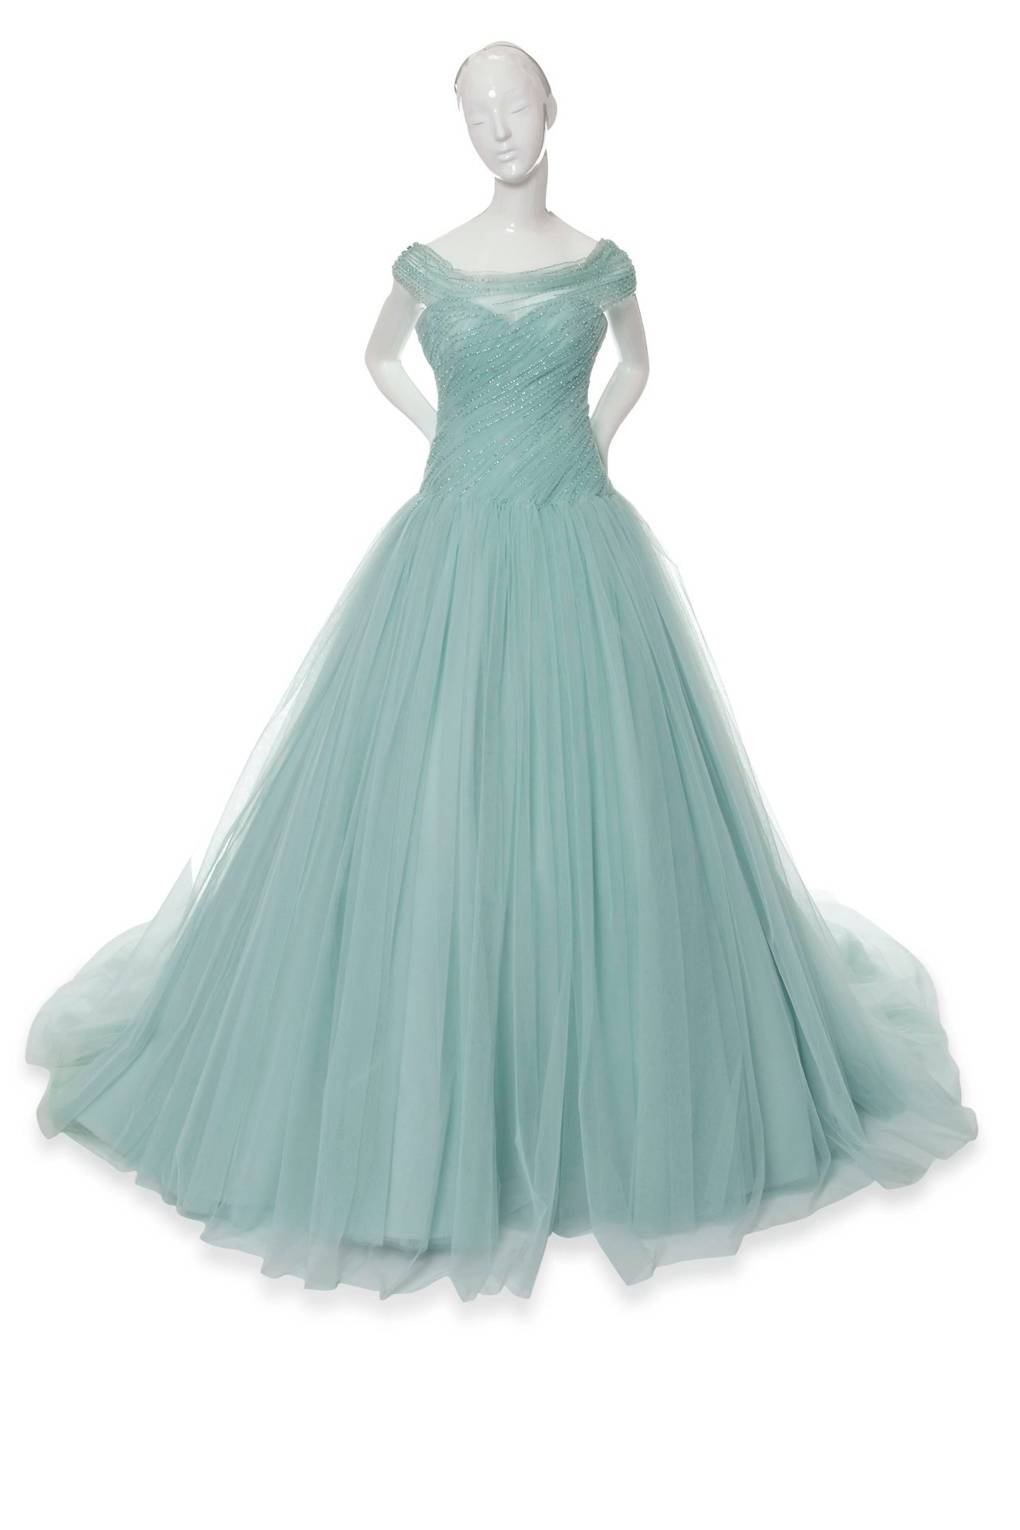 Disney Princess Dresses Go Up For Auction at Christies | Glamour UK